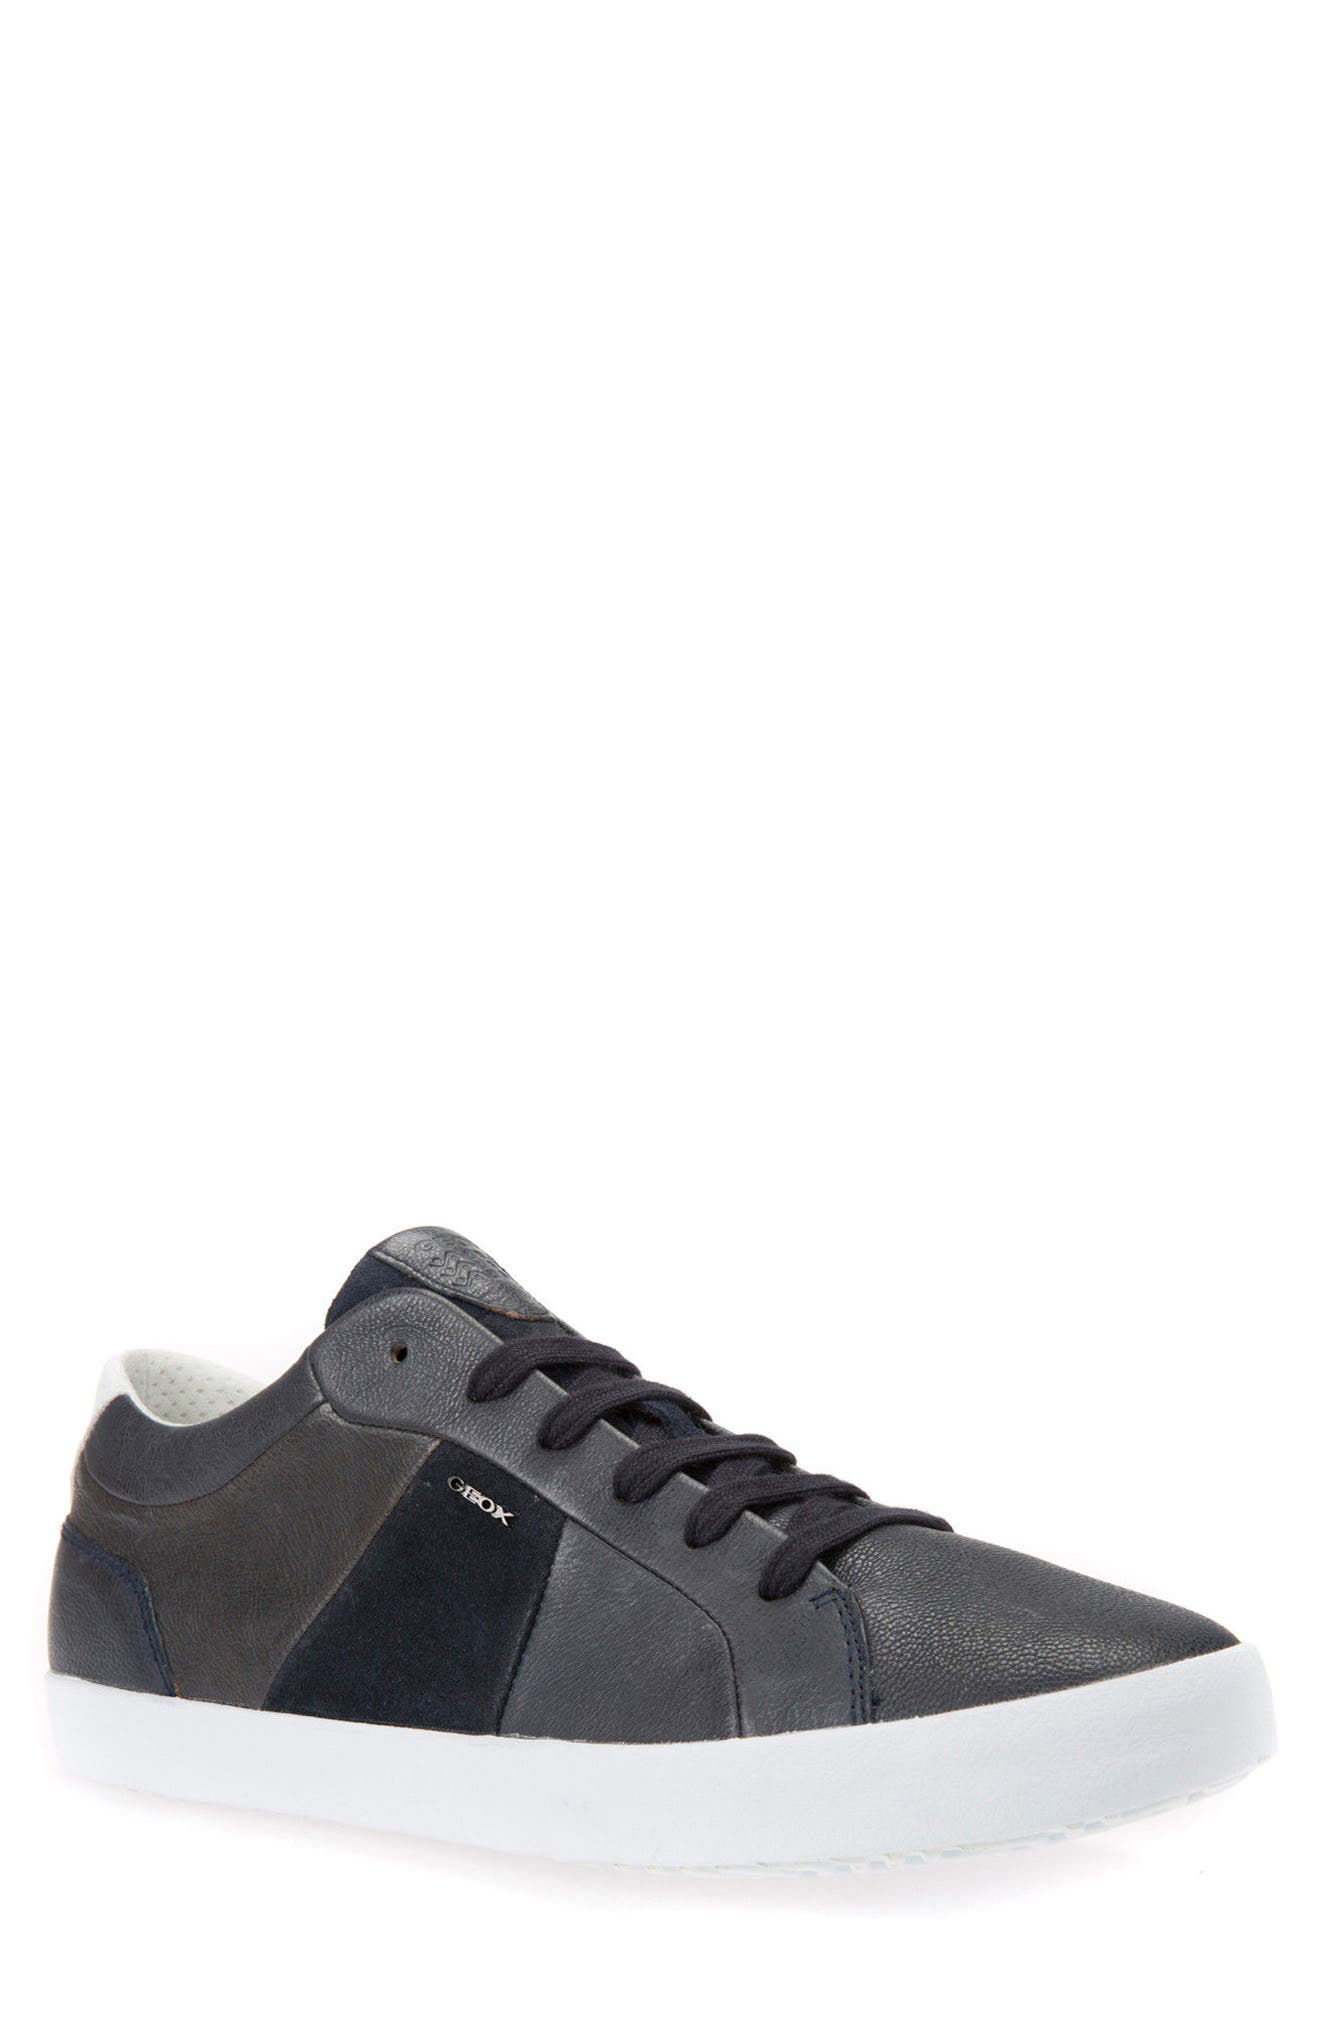 Smart 77 Sneaker,                             Main thumbnail 1, color,                             Navy Leather